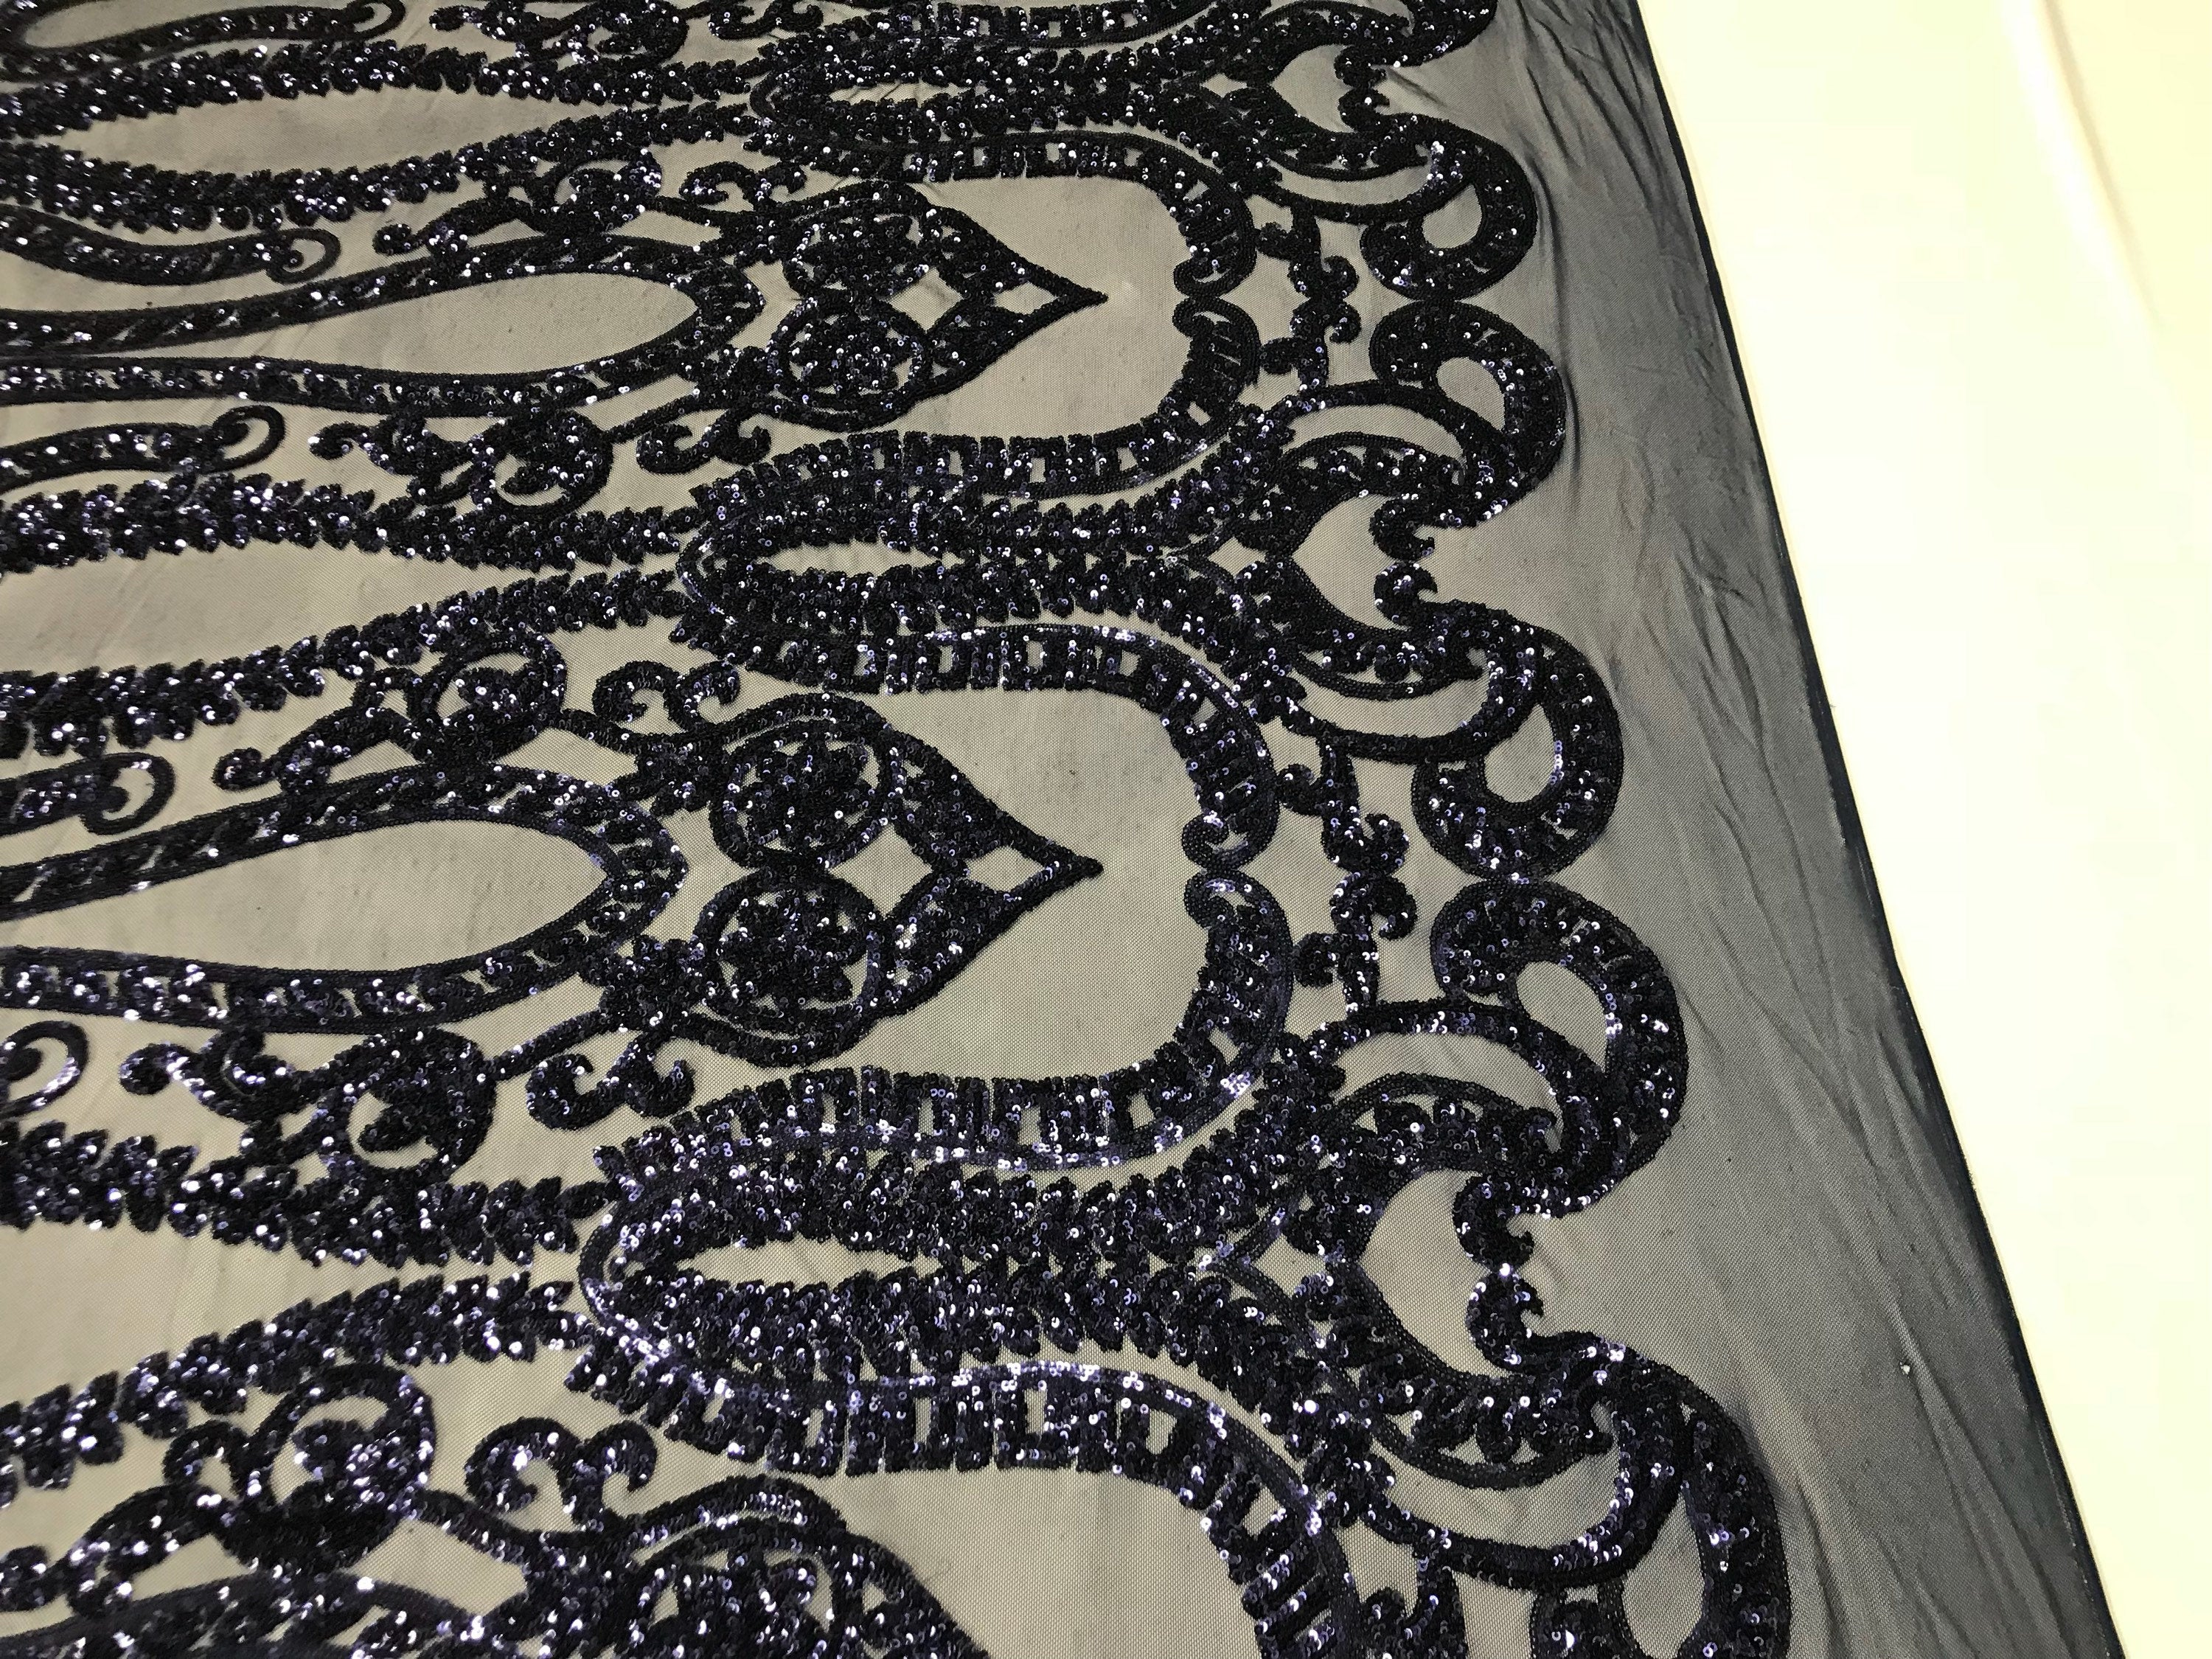 Navy 4 Way Stretch Fabric By The Yard Sequins Fabric Embroidery Power Mesh Dress Top Fashion Prom Wedding Lace Decoration - KINGDOM OF FABRICS